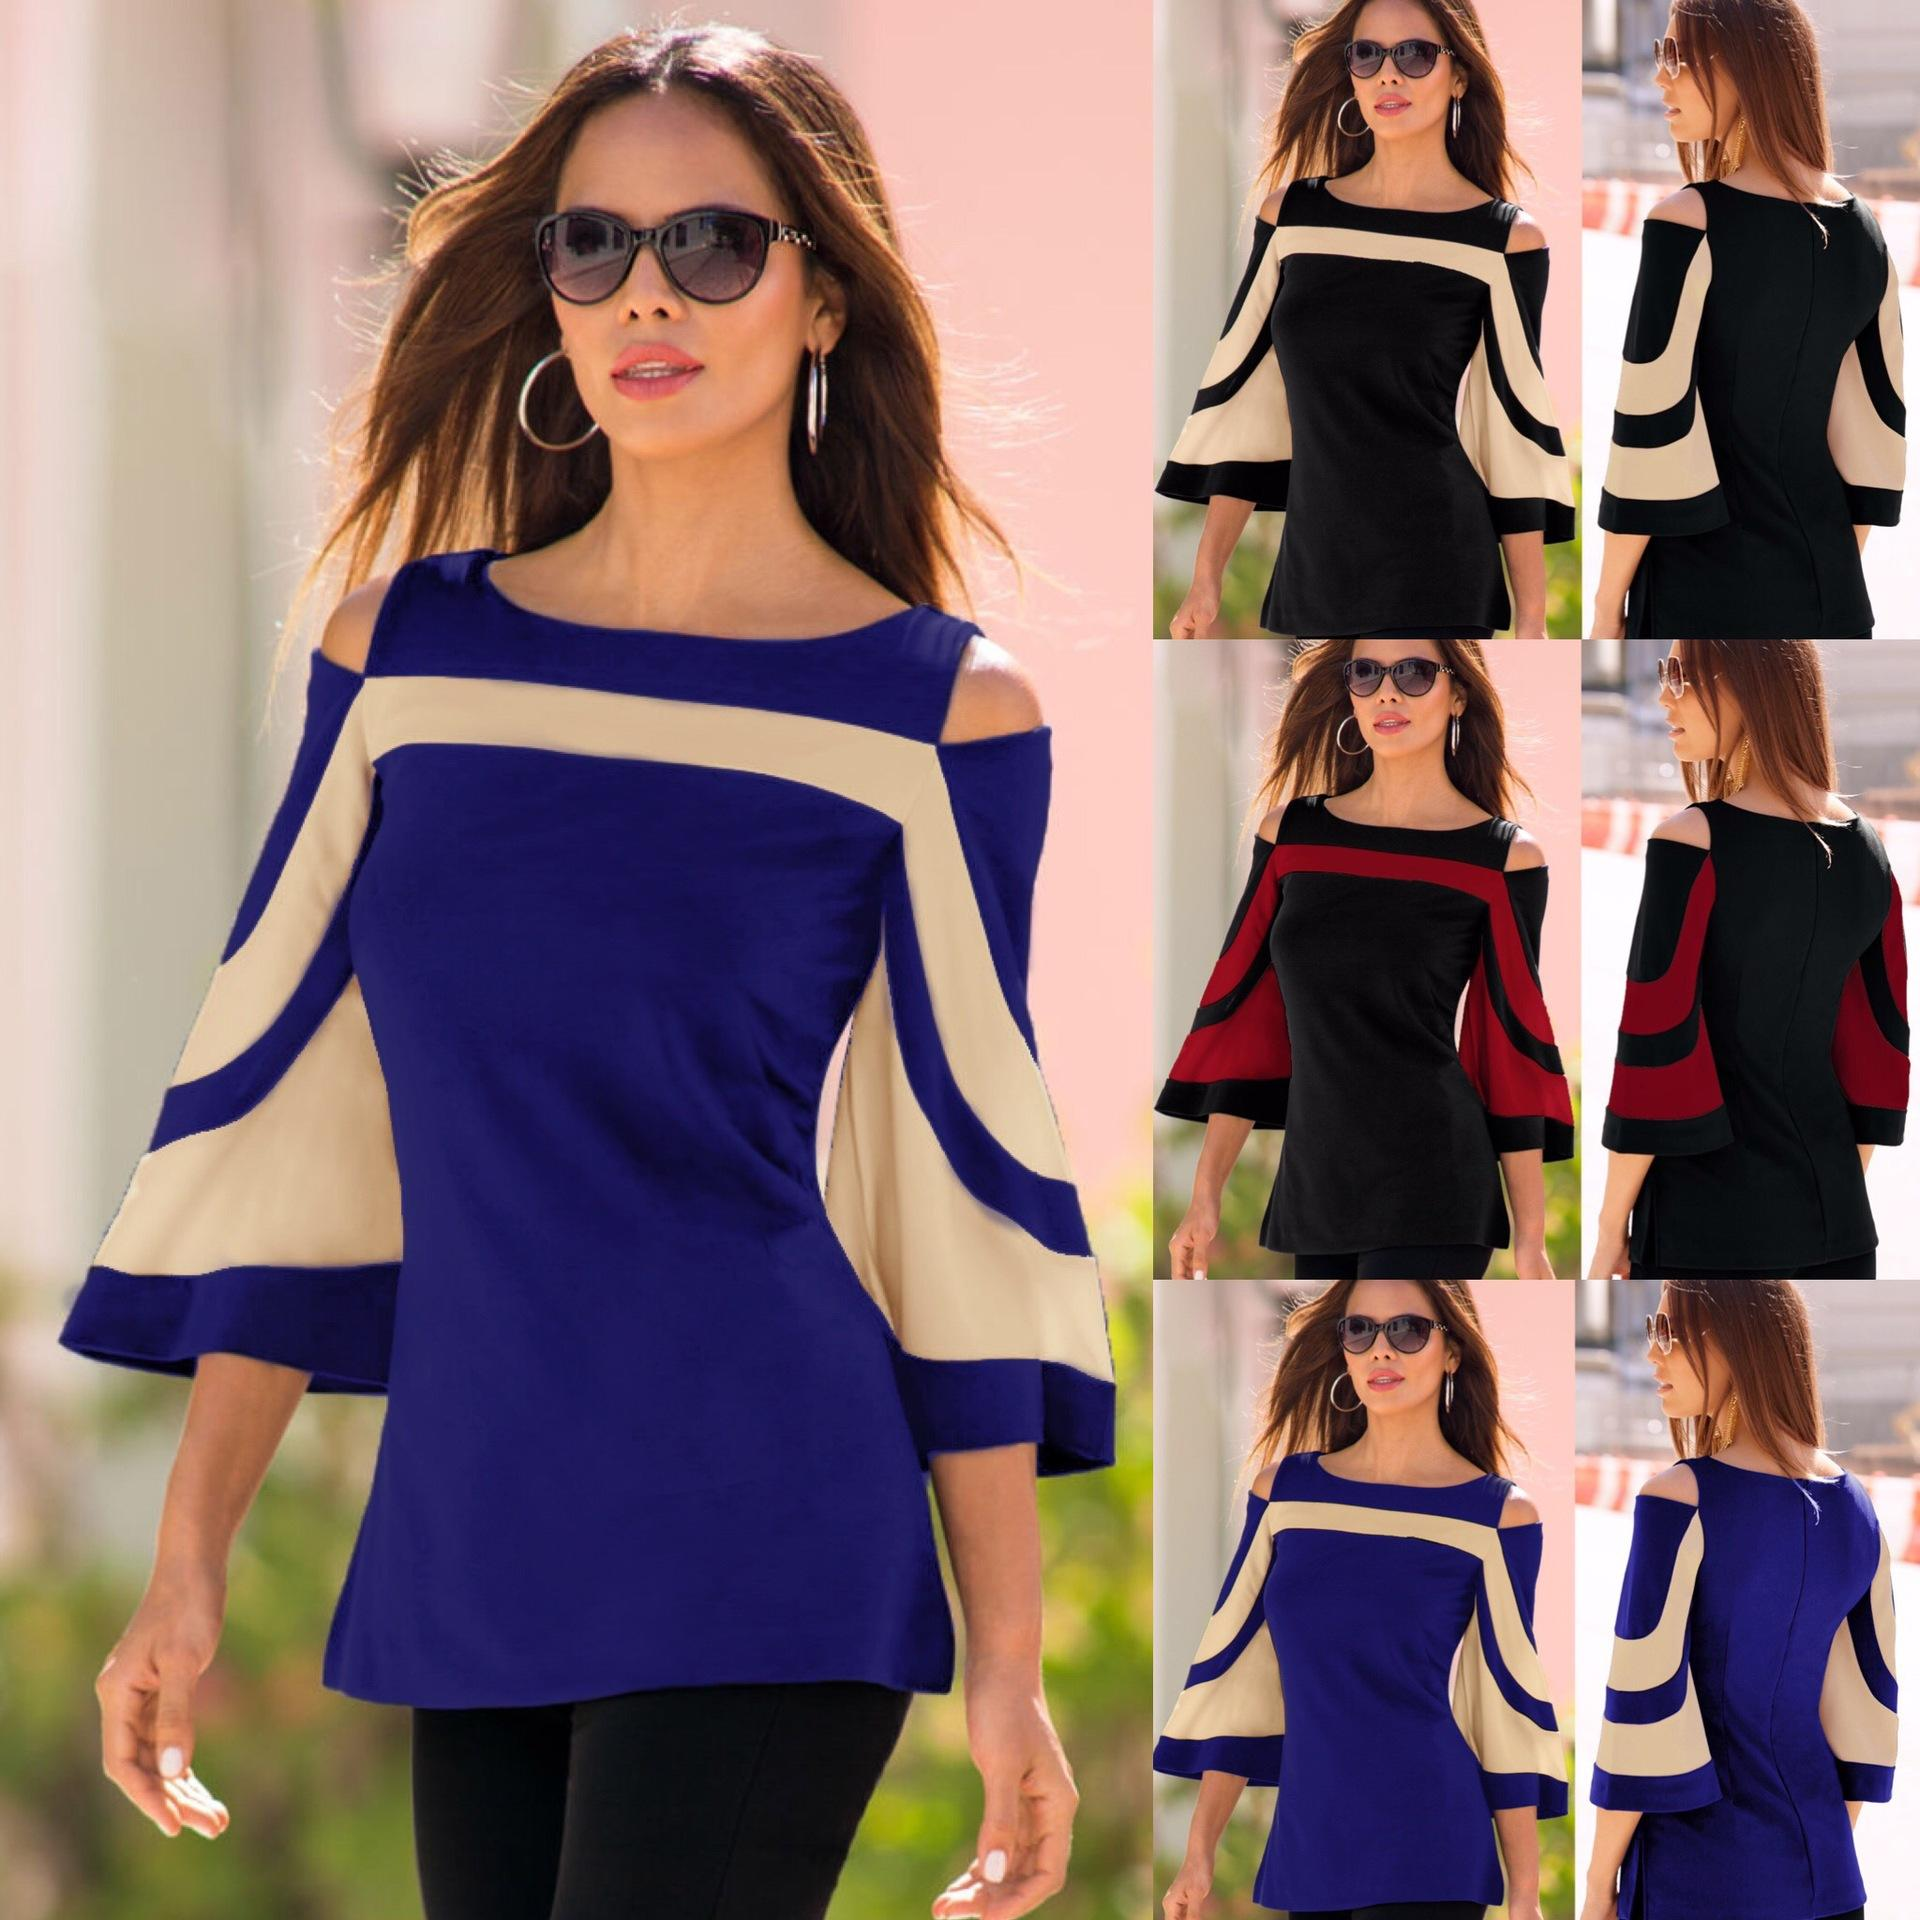 aff92d1018c 2019 Casual Bat Sleeve Blouse Women Spring New Sexy Off Shoulder Women  Shirts Office Ladies Tops Loose Blouses Blusas Femininas From  Queenweddingdressing, ...